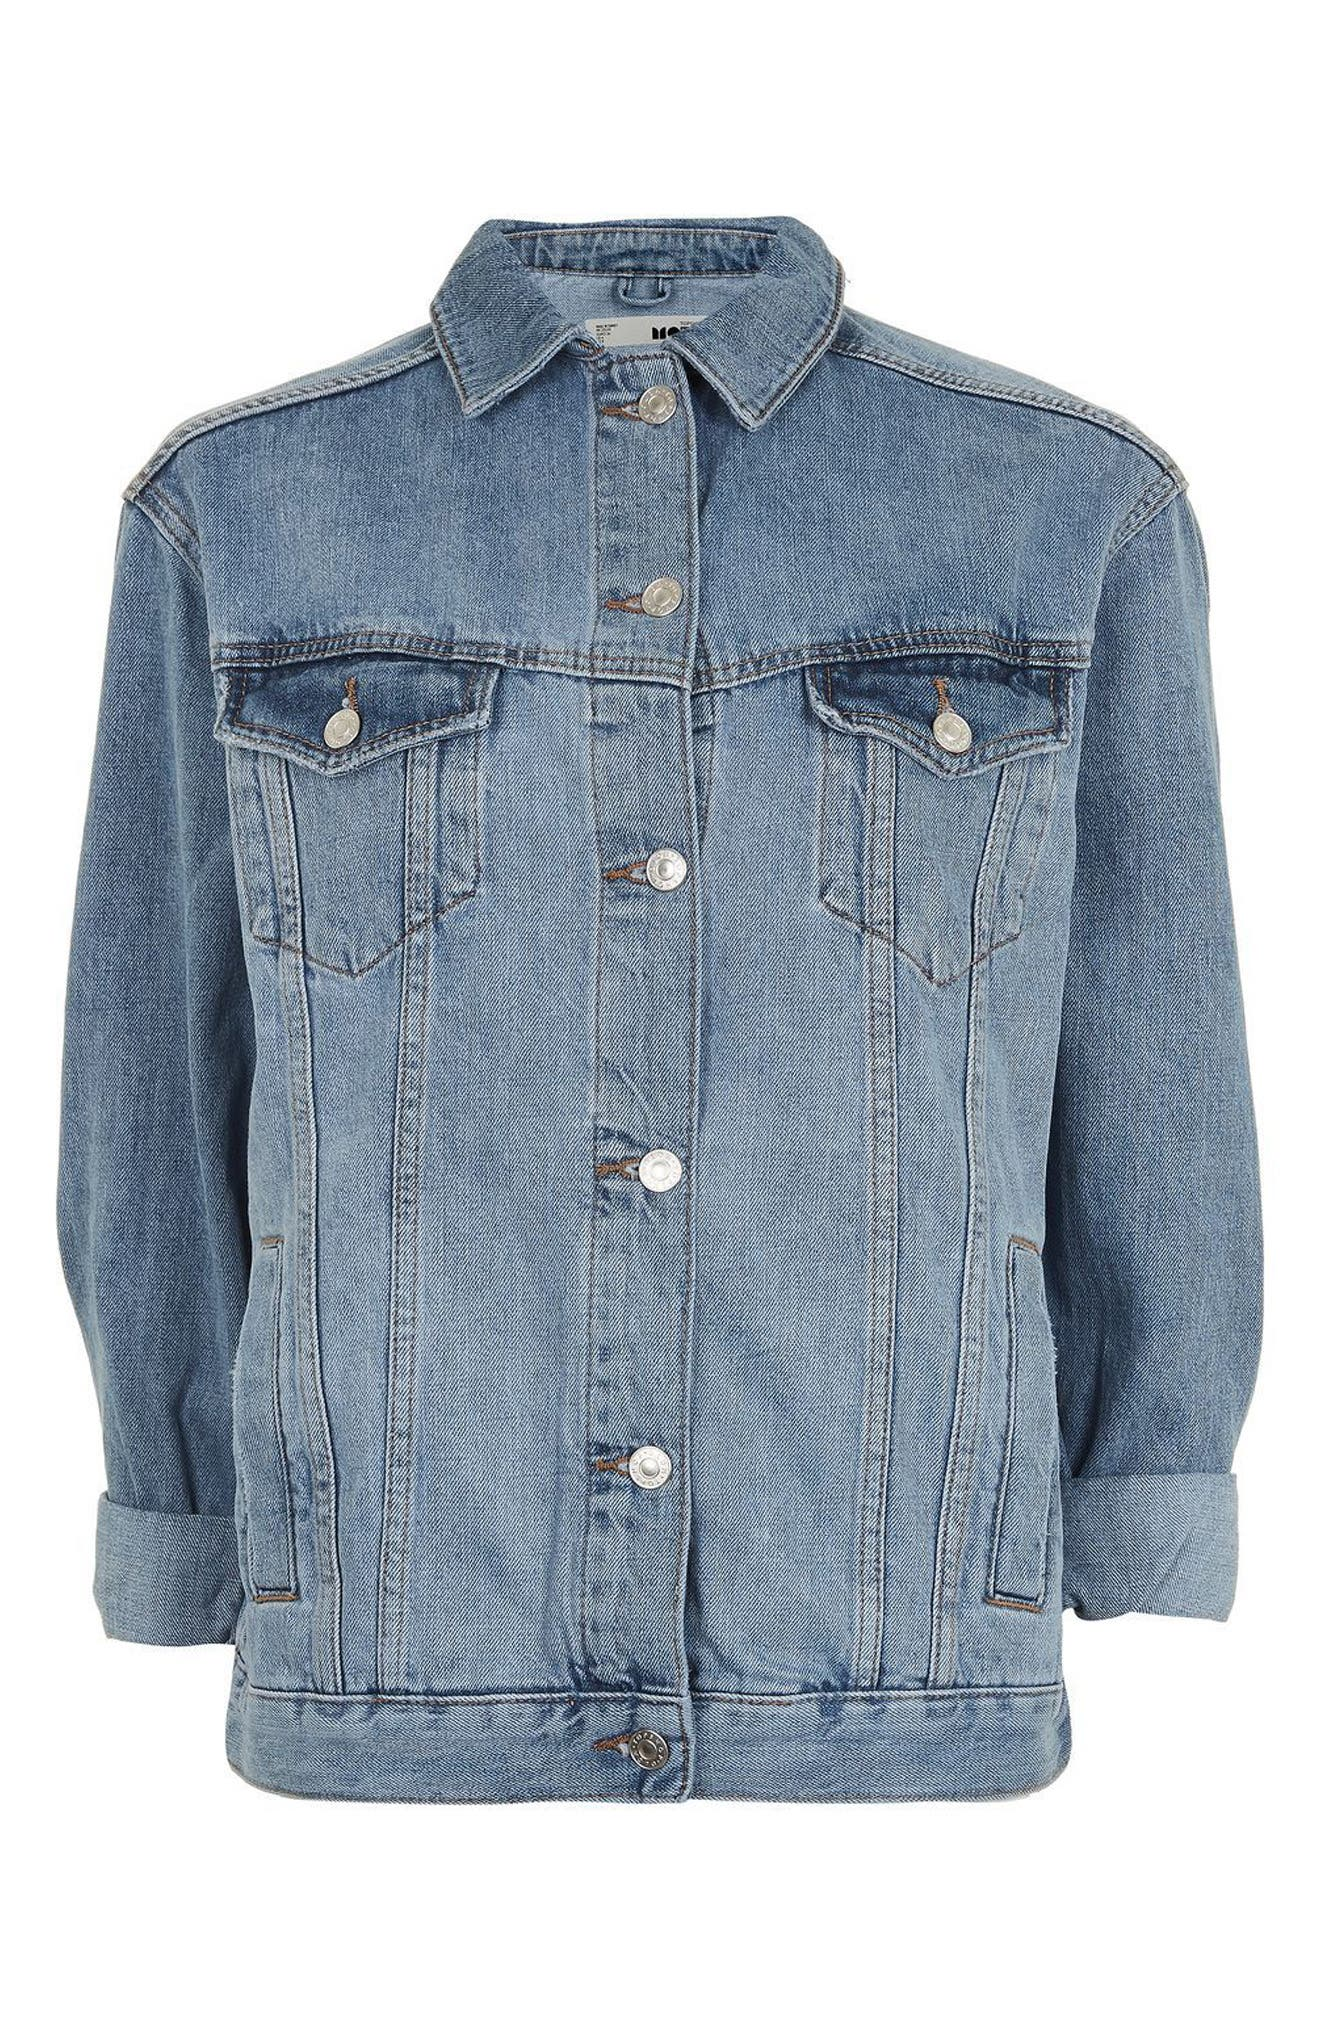 Oversize Denim Jacket,                             Alternate thumbnail 3, color,                             Mid Denim